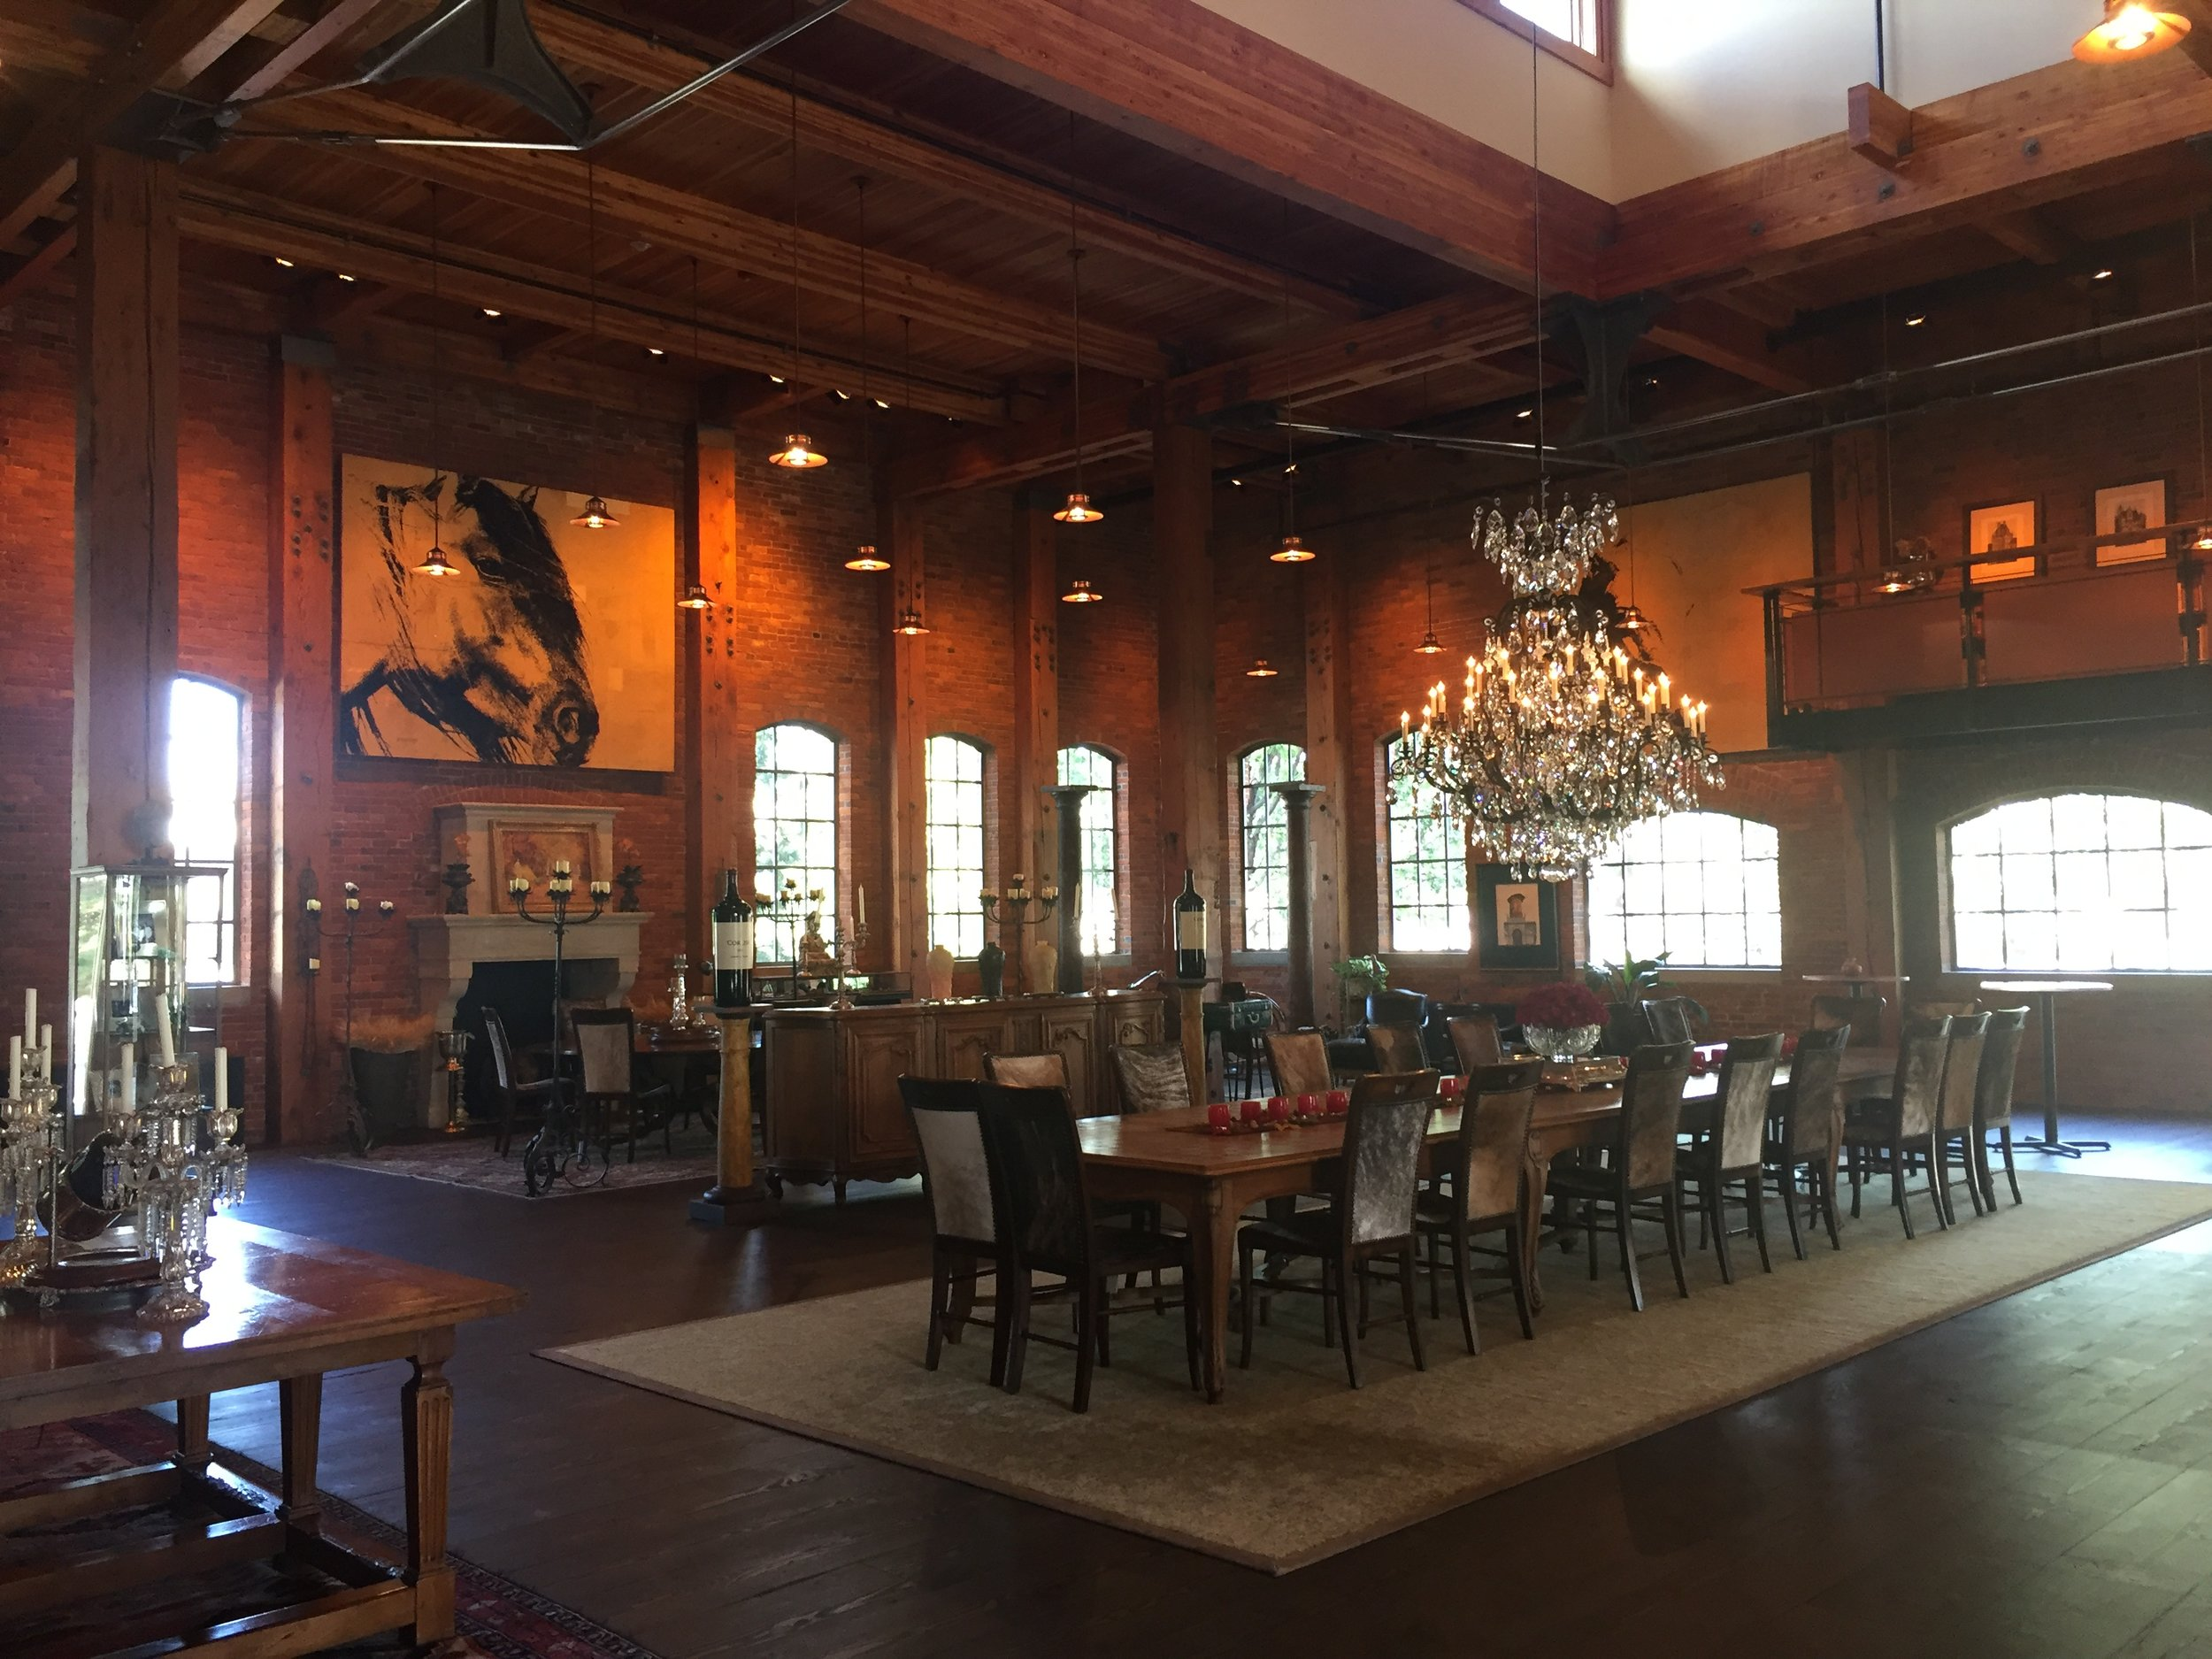 The remarkable tasting and event facilities at Corliss Estates.